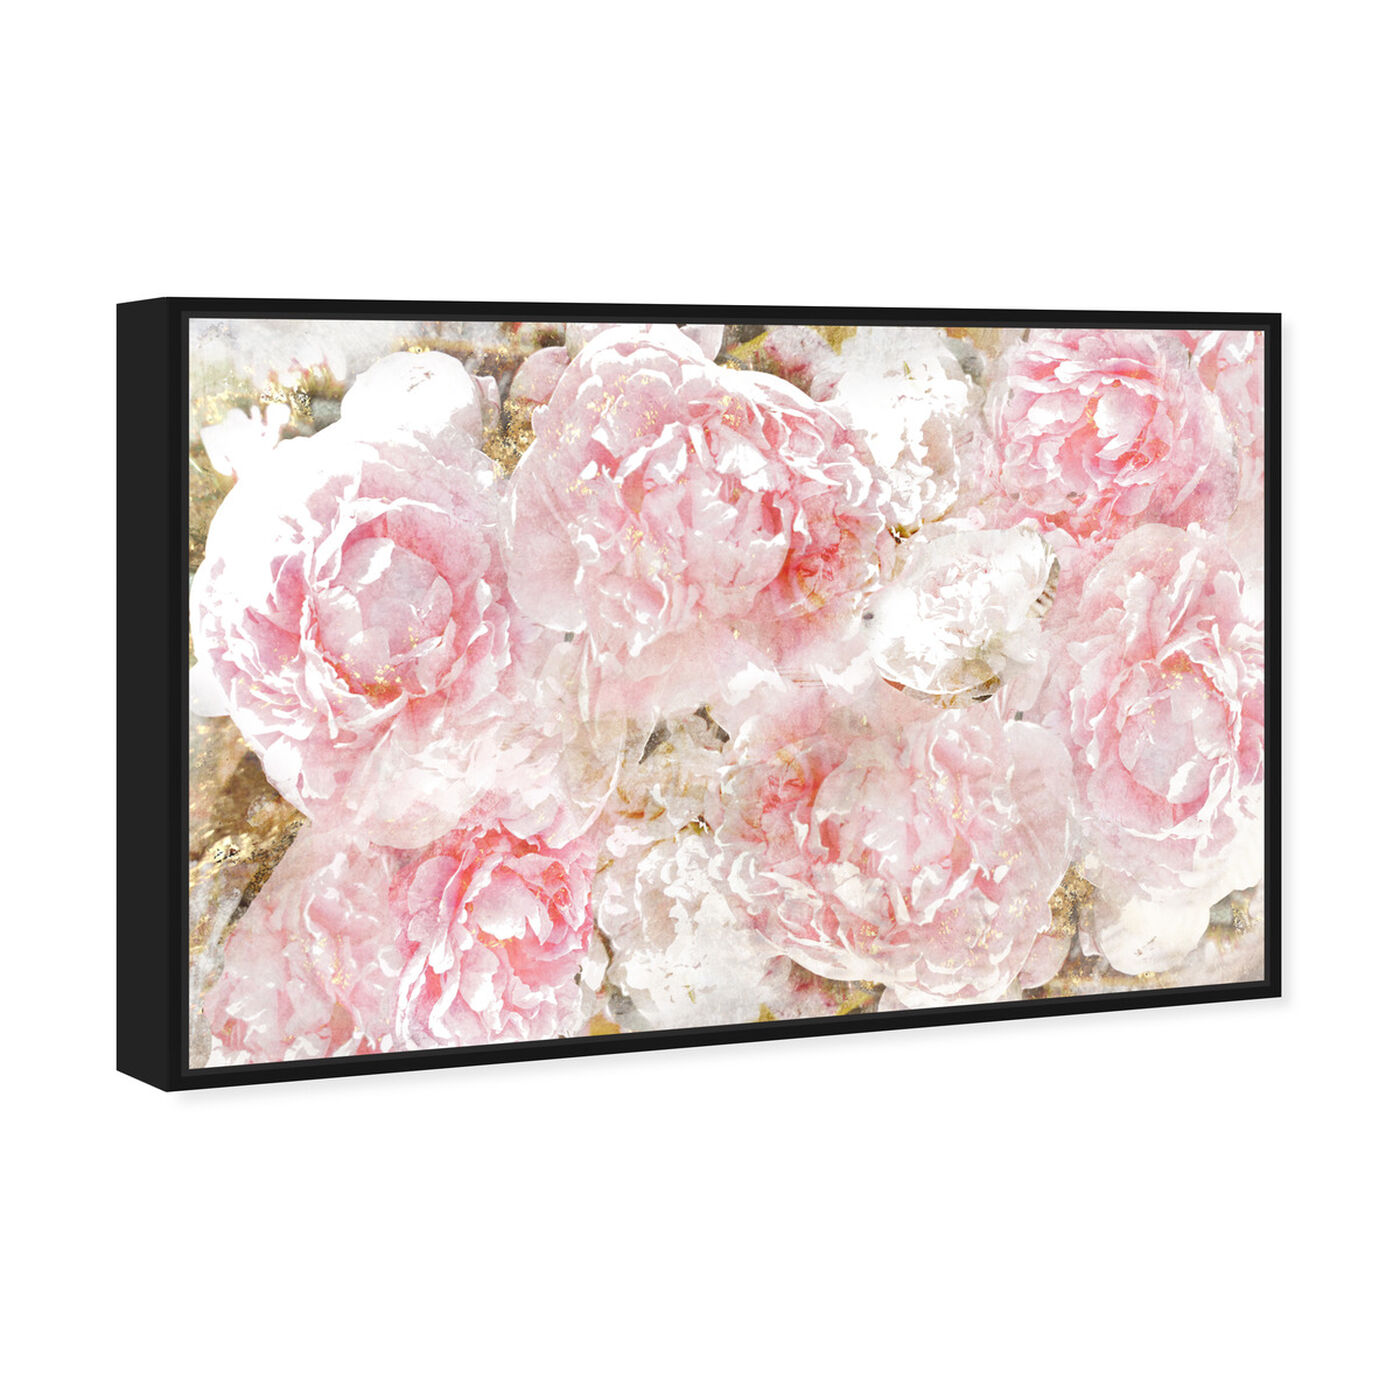 Angled view of Pile O' Roses featuring floral and botanical and florals art.